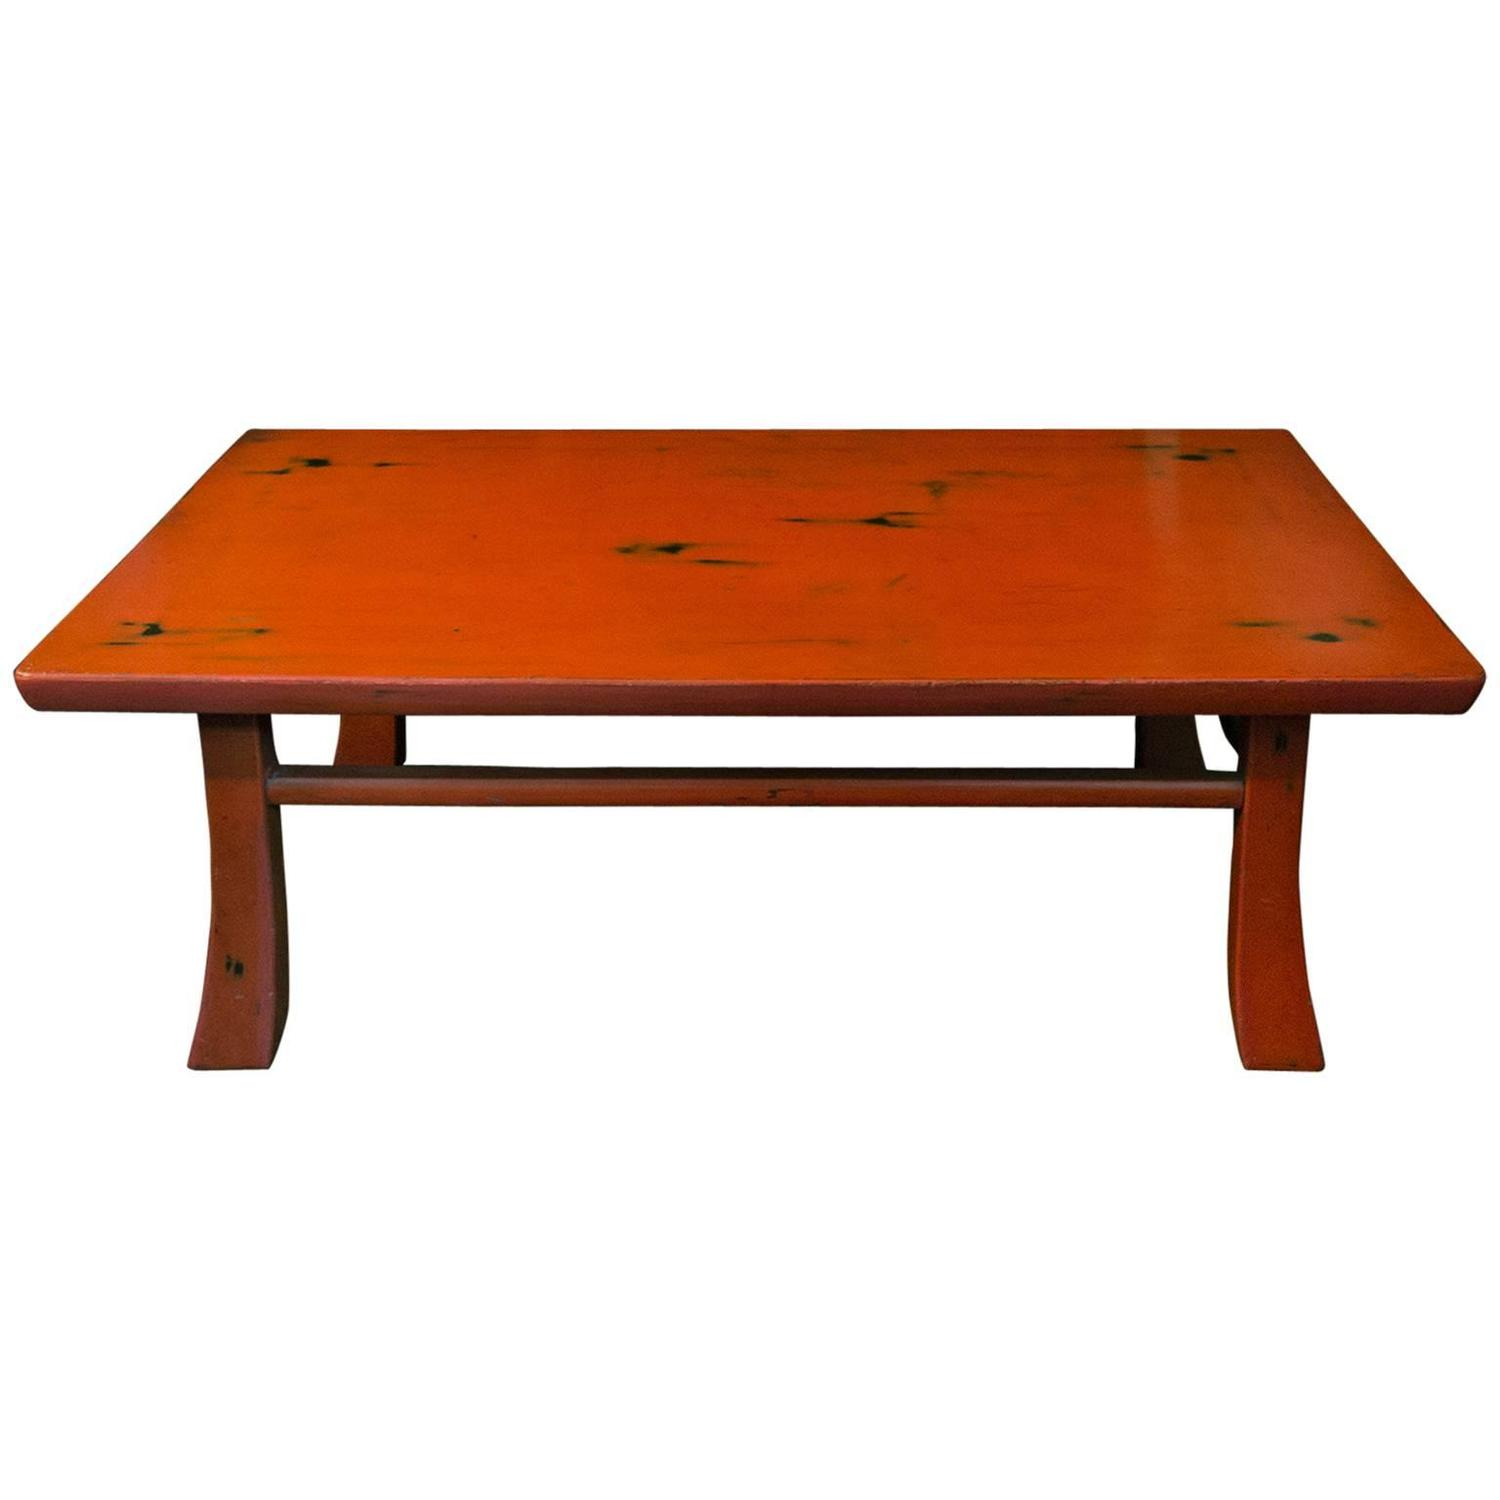 Vintage Japanese Style Negoro Nuri Lacquer Low Table For